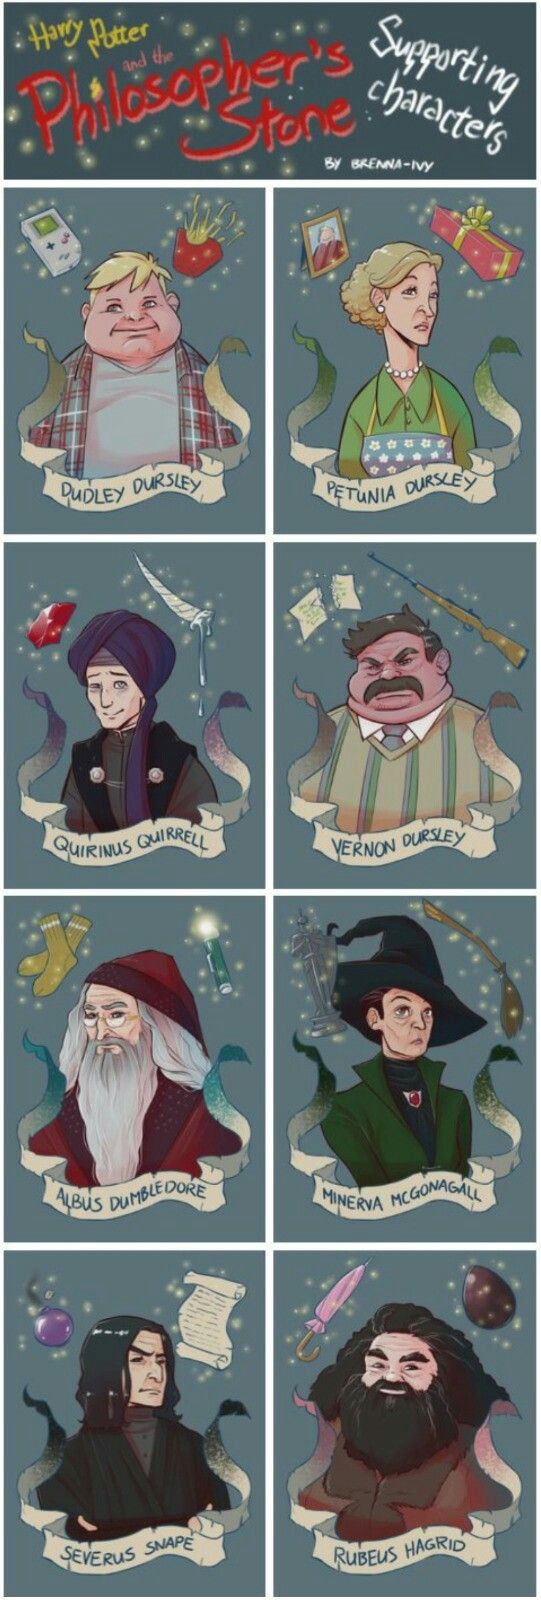 Harry Potter and the Philosopher's Stone #HP